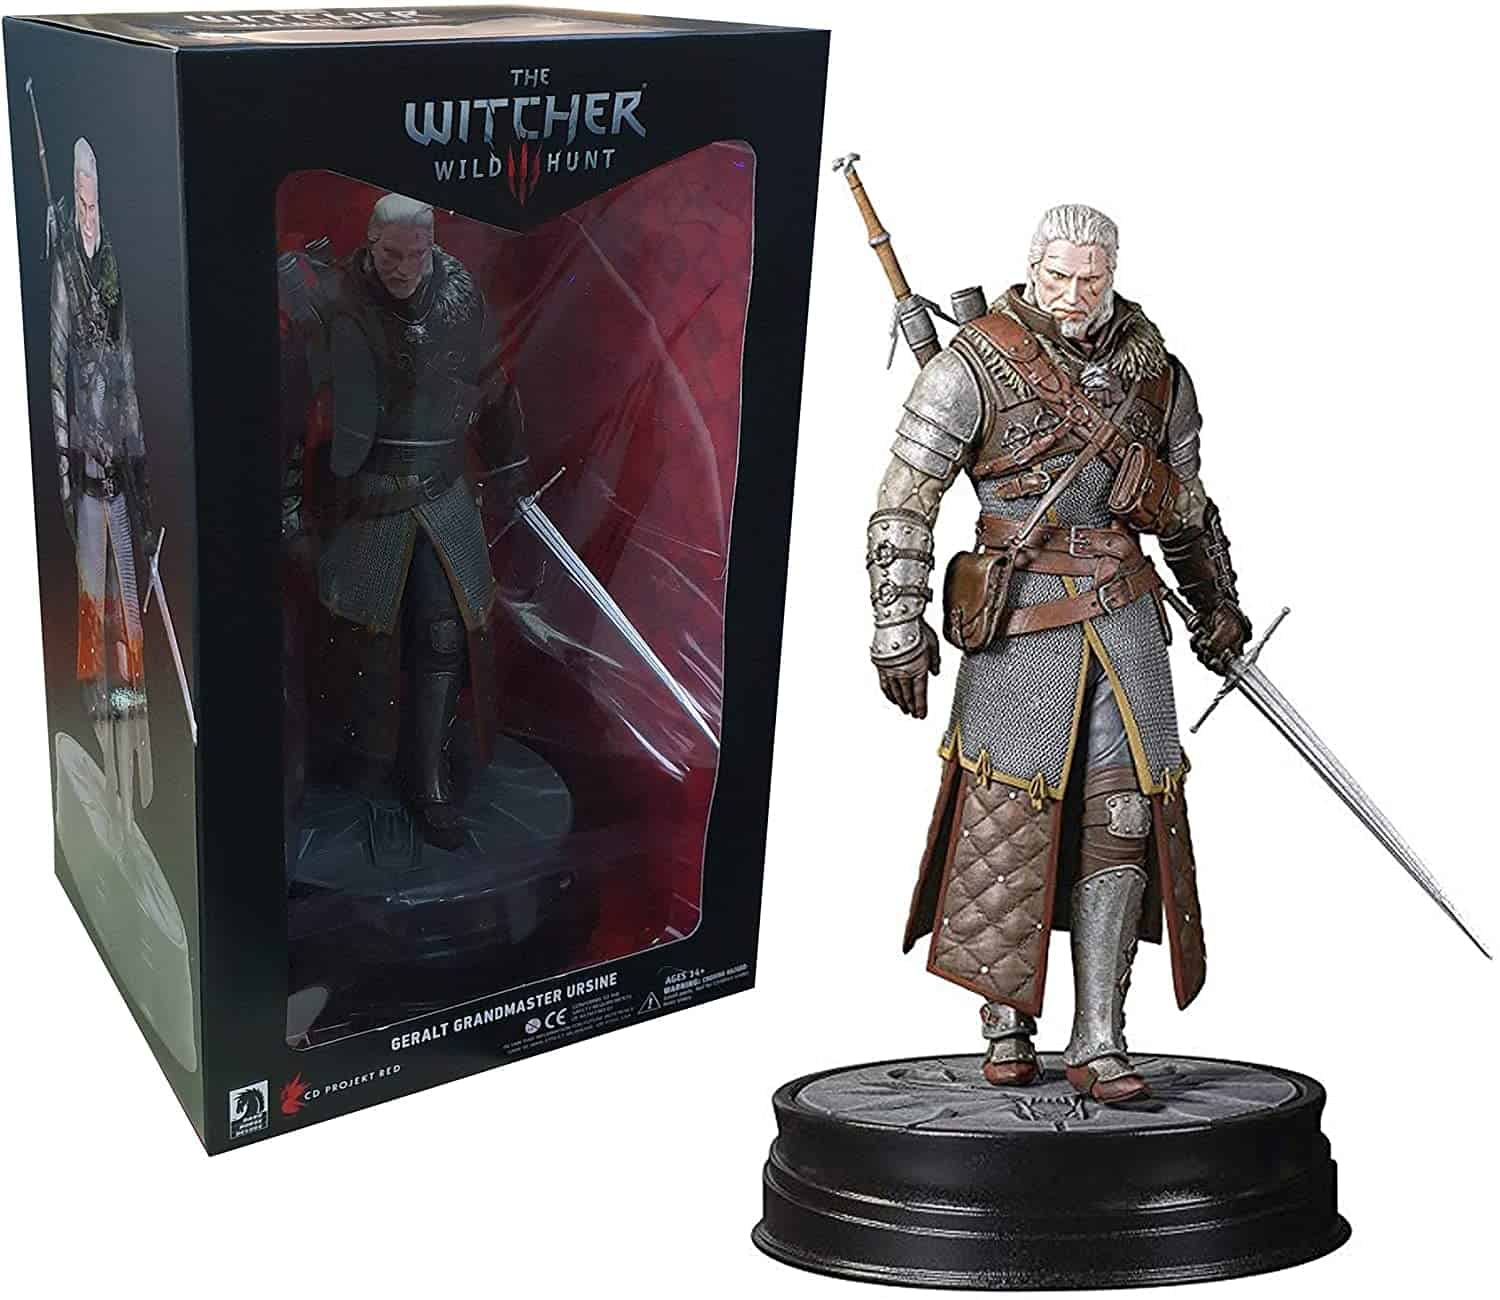 The Witch Wild Hunt Figure